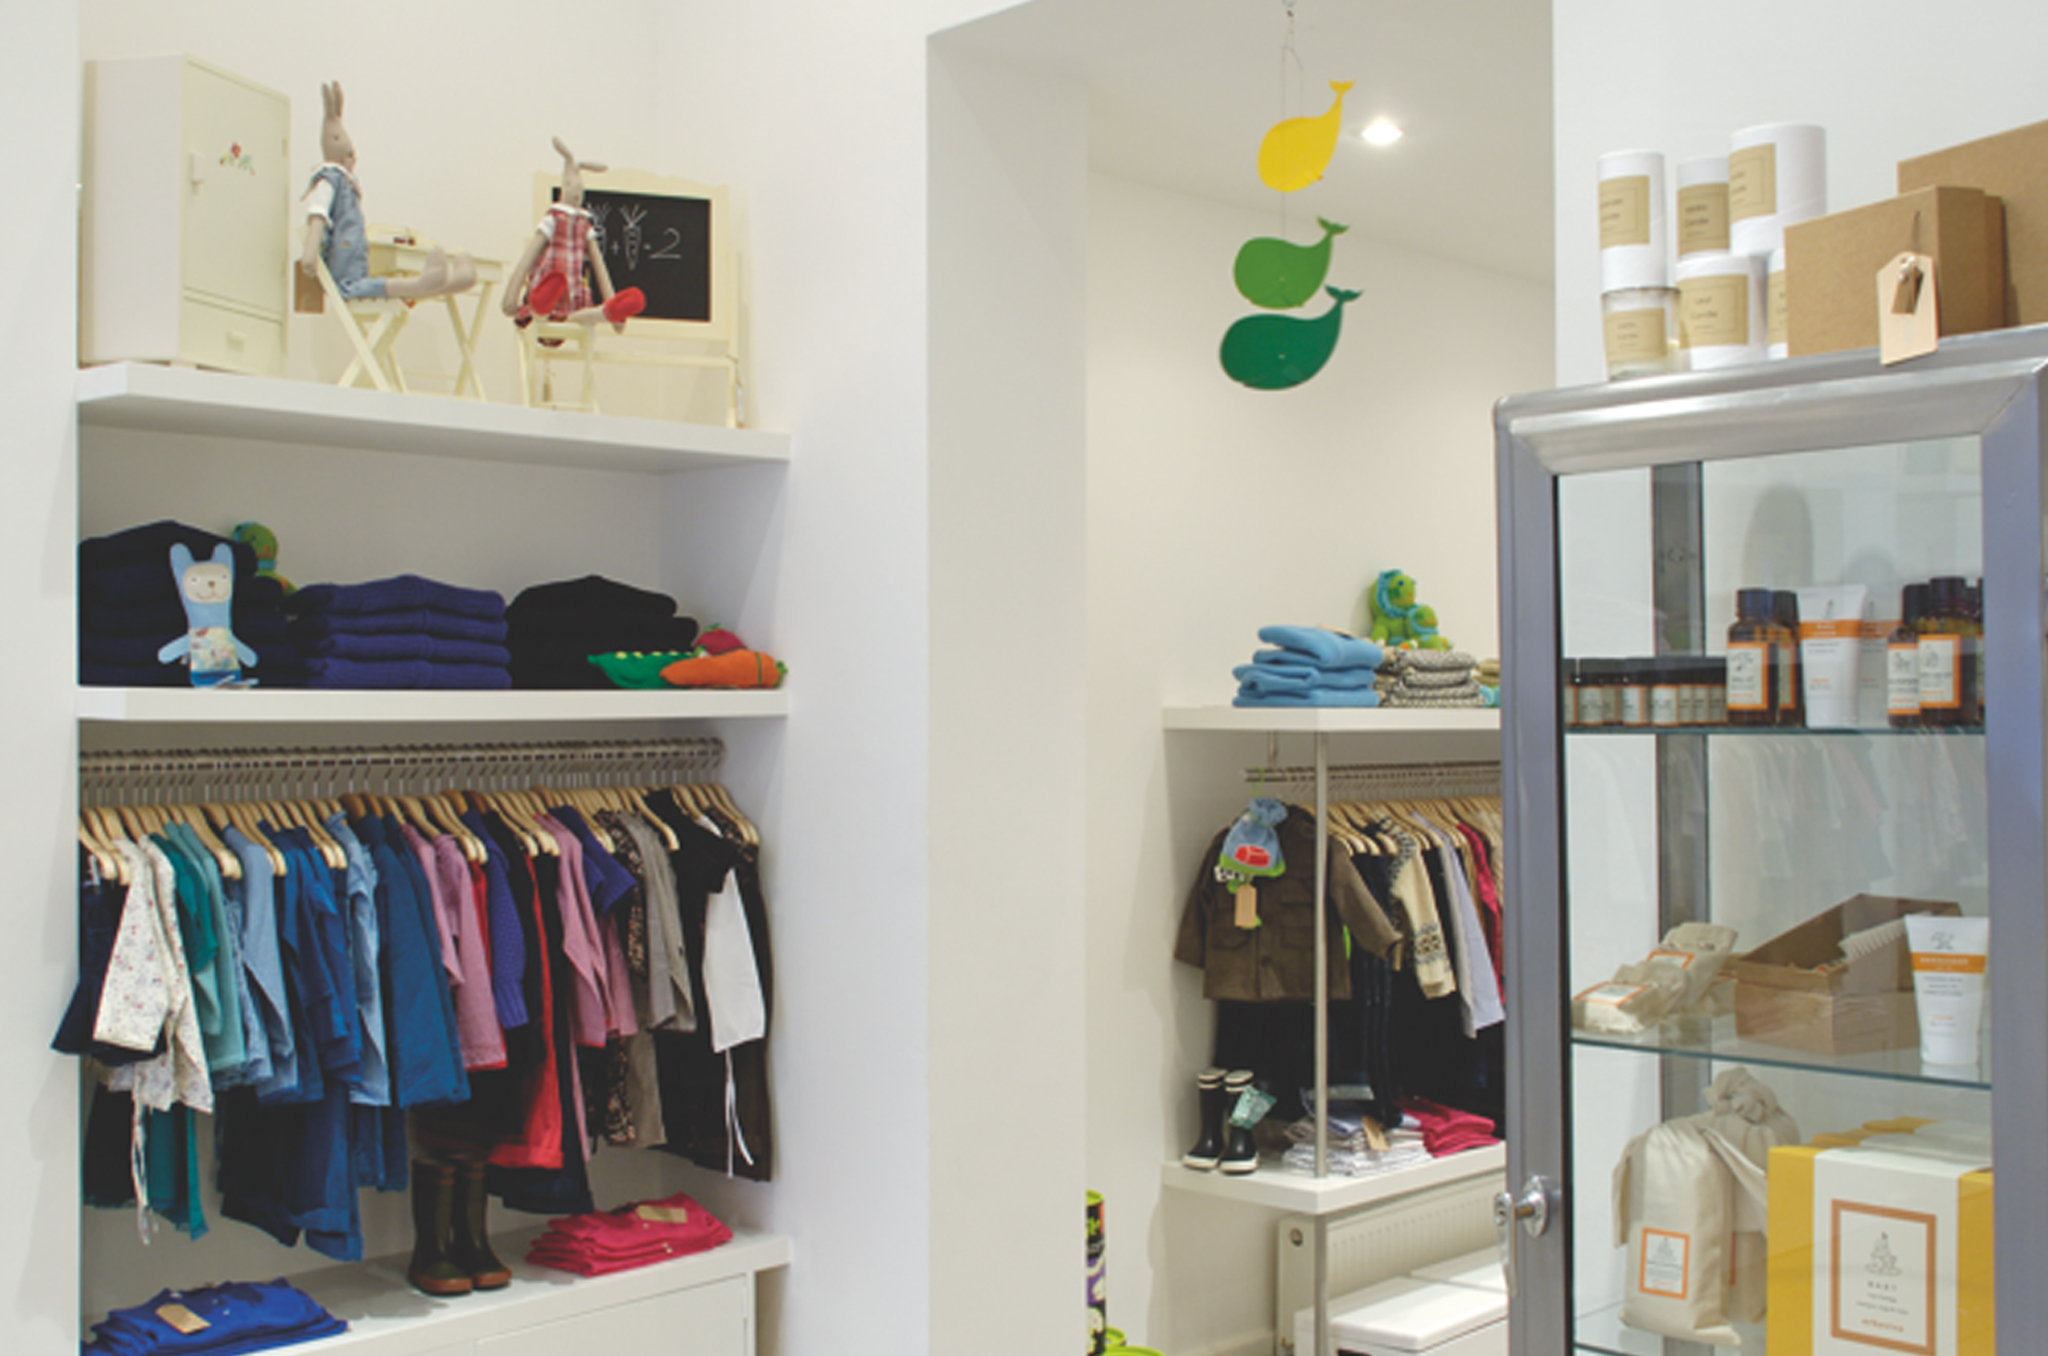 Hartstrings children's clothing store